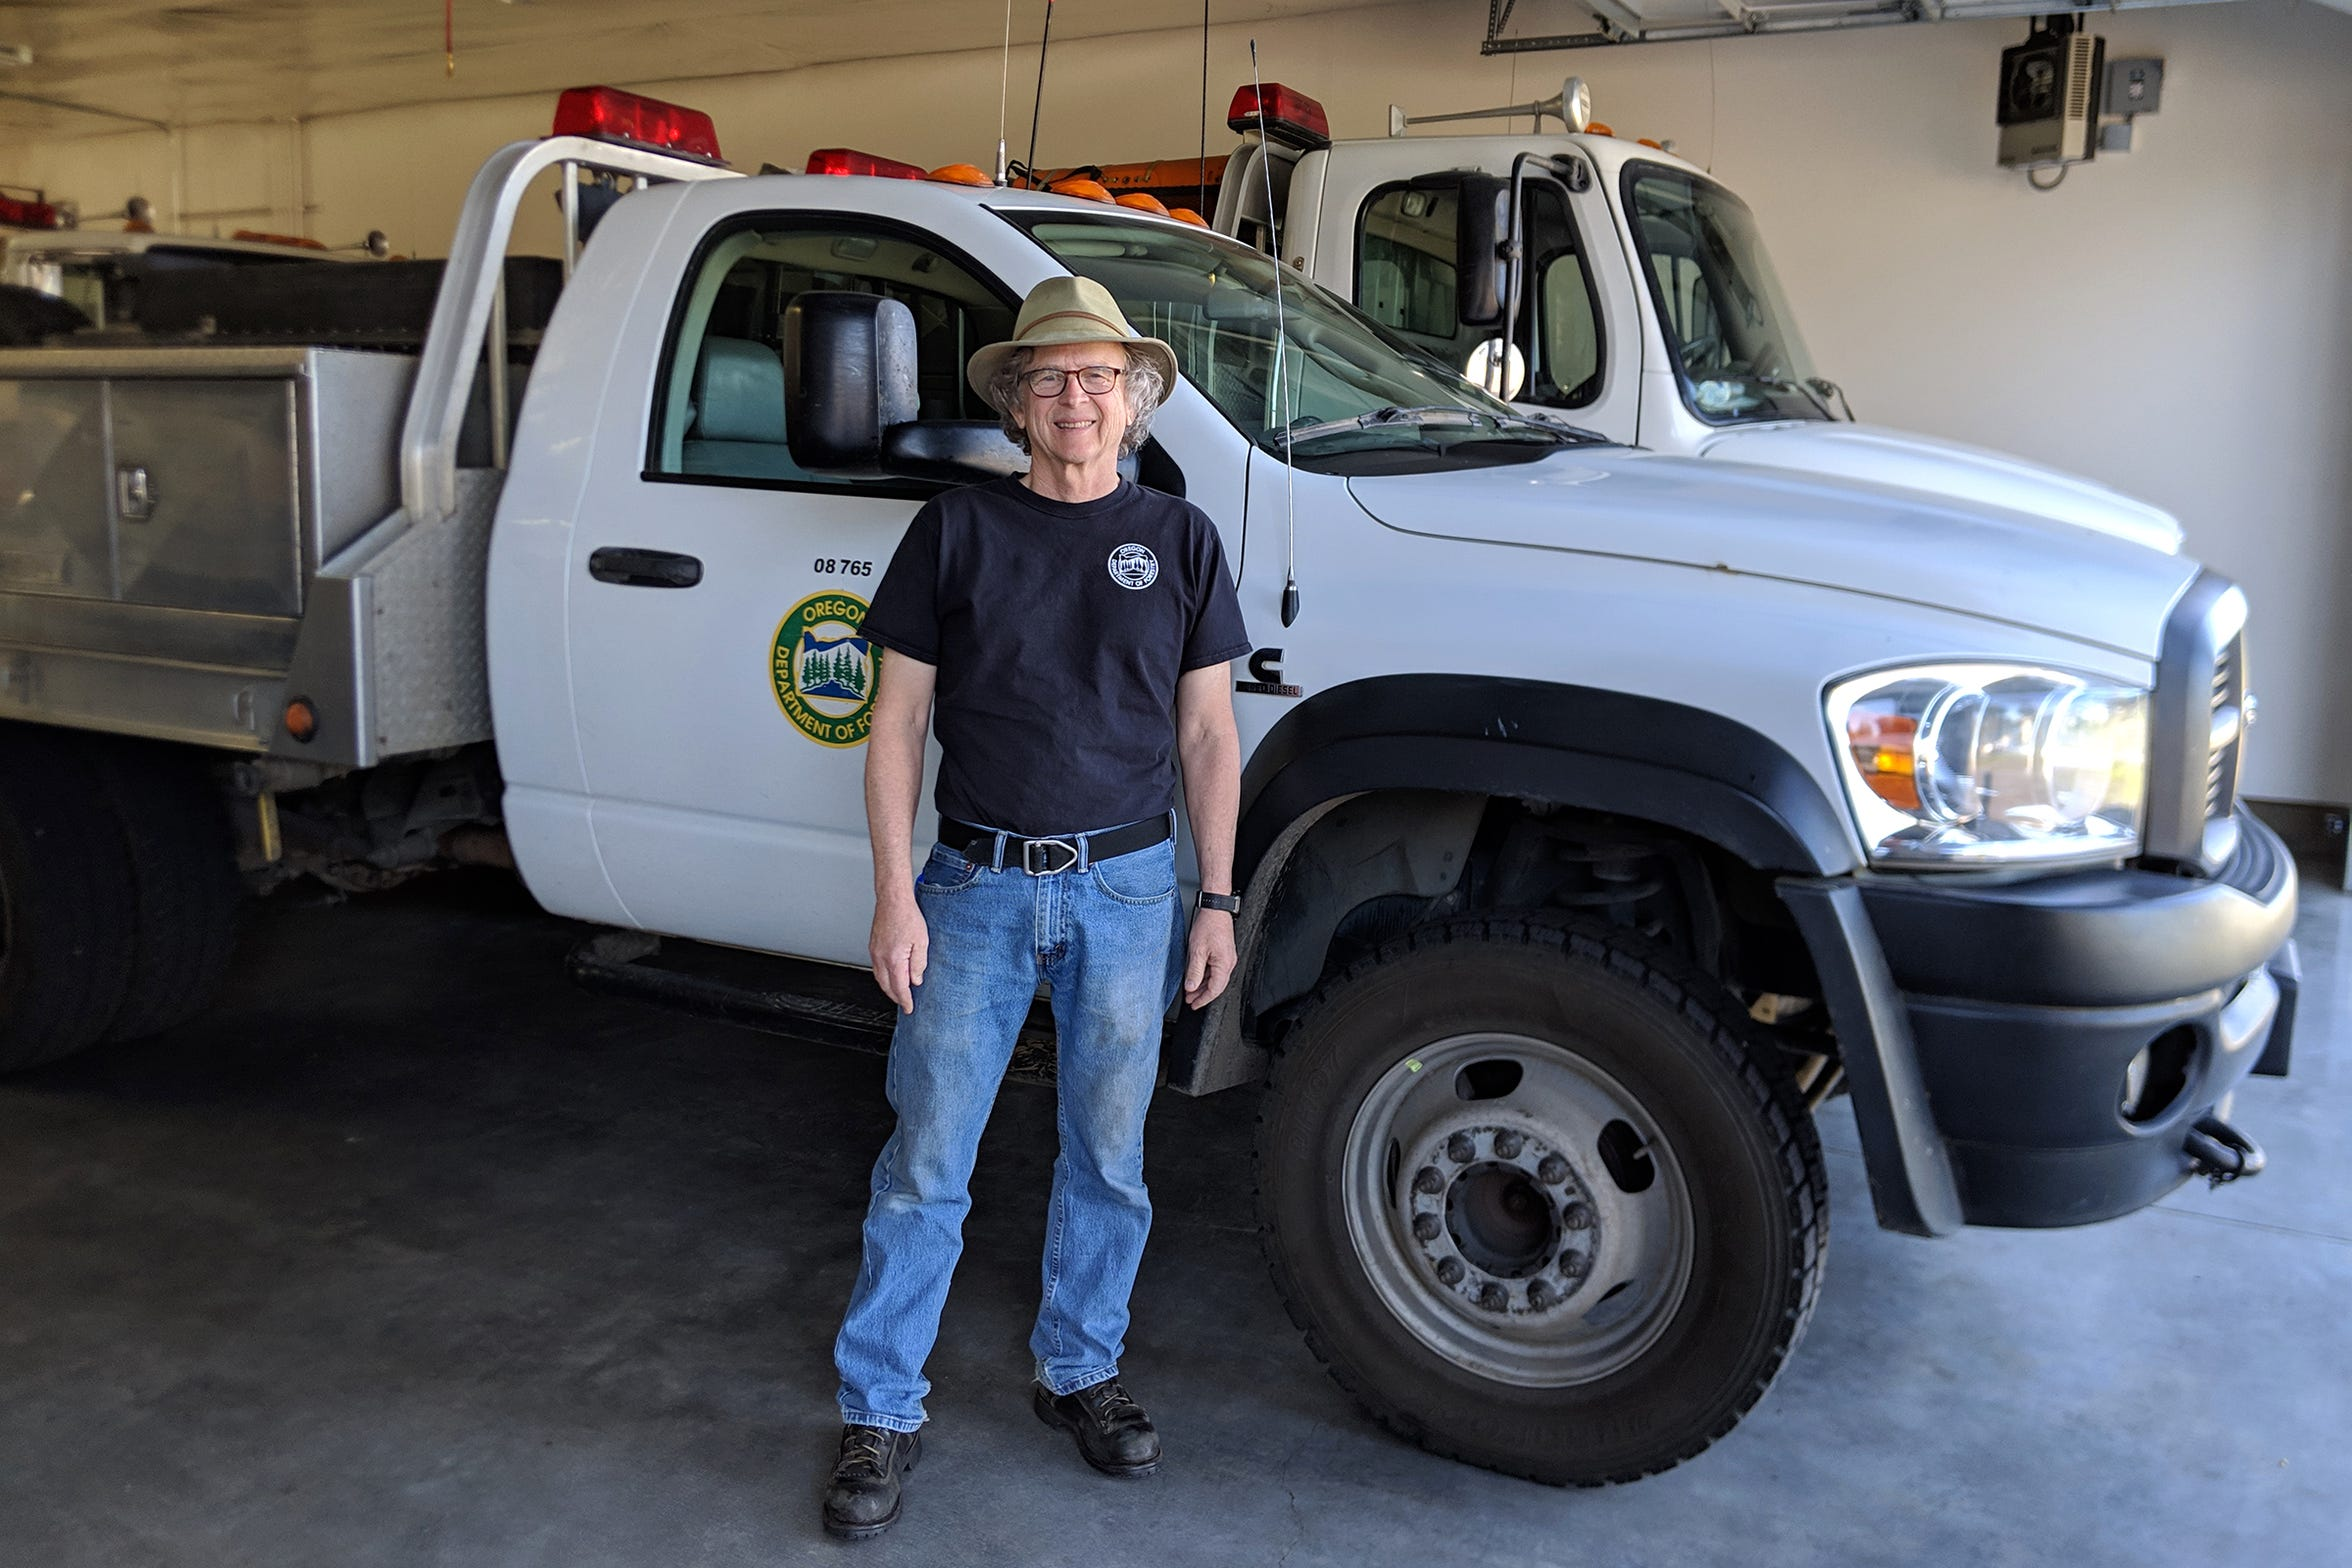 Tom Soward, a wildland fire crew manager, started his career with the Oregon Department of Forestry as a firefighter in 1970. He's starting his 50th fire season this year.